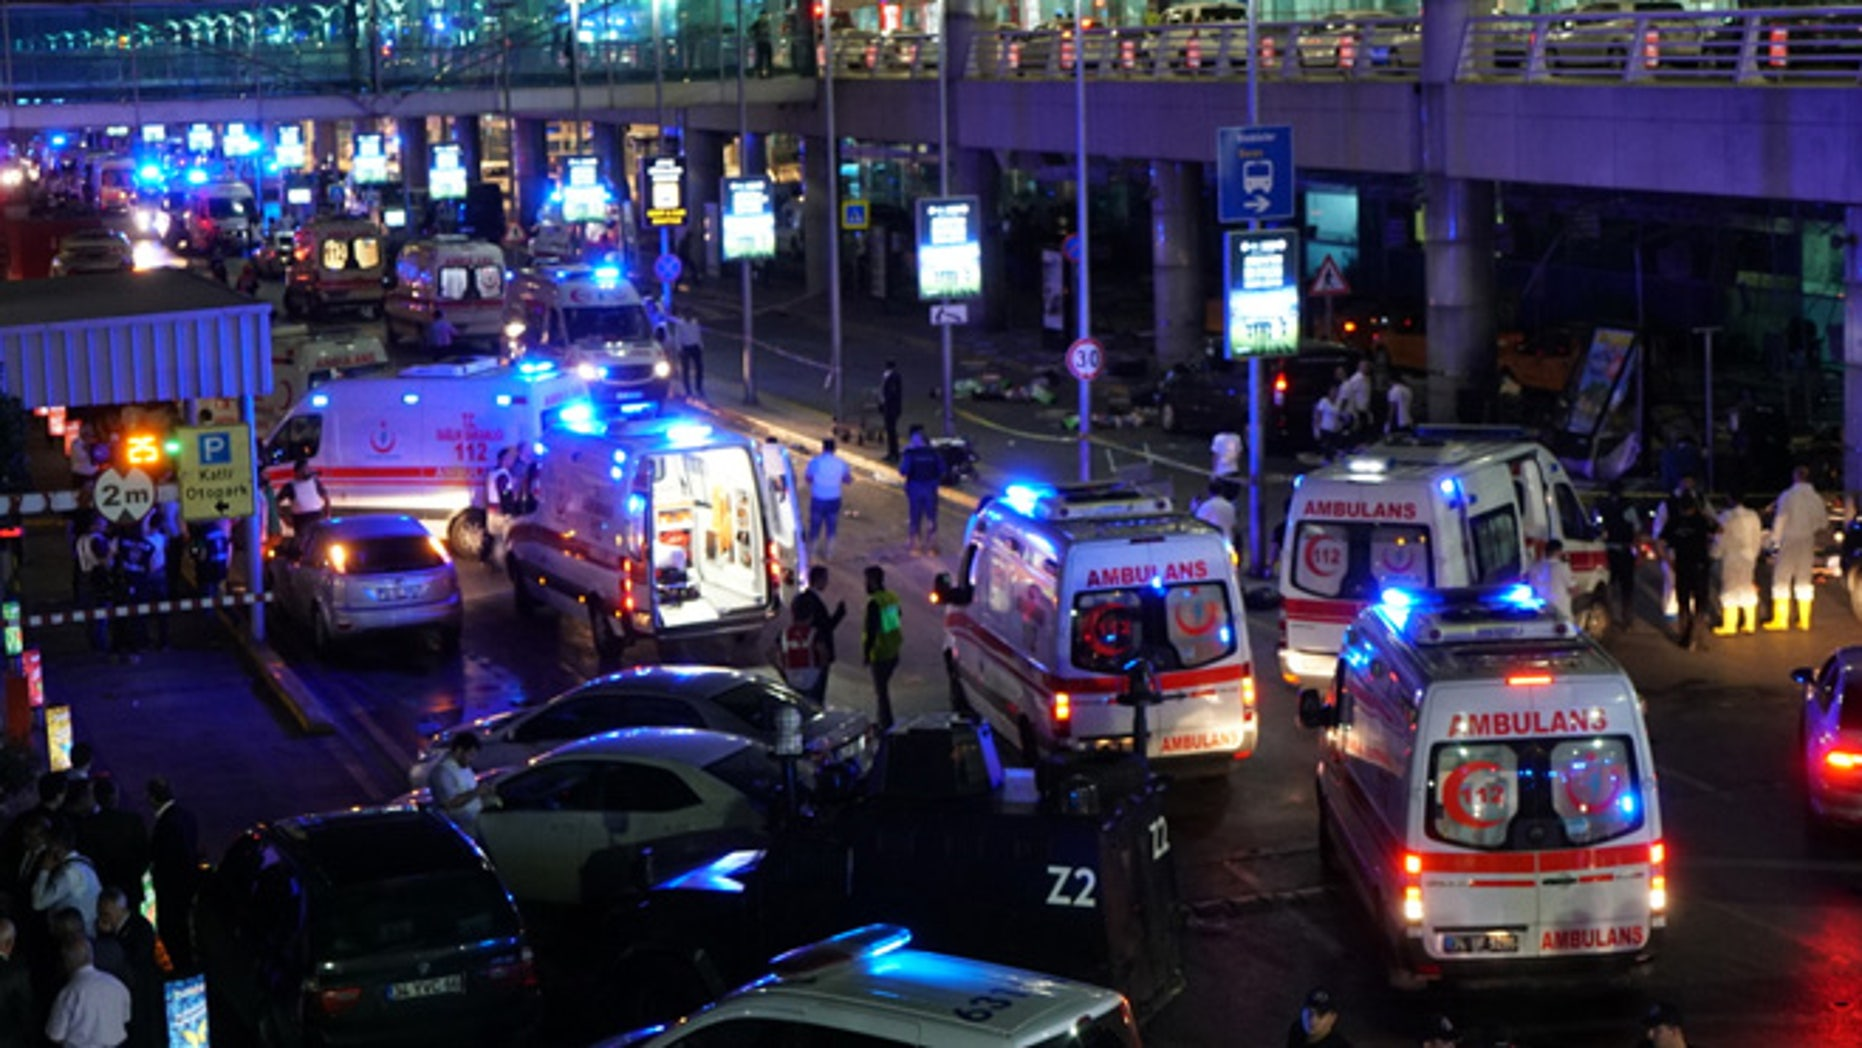 ISTANBUL, TURKEY - JUNE 28: Security and ambulances block the road outside Turkey's largest airport, Istanbul Ataturk, after it was hit by a suicide bomb attack on June 28, 2016, Turkey. Two suicide bombers opened fire before blowing themselves up at the entrance to the main international airport in Istanbul, killing at least 10 people and wounding at least 60 people according to Justice Minister Bekir Bozdagç. (Photo by Mehmet Ali Poyraz/Getty Images)